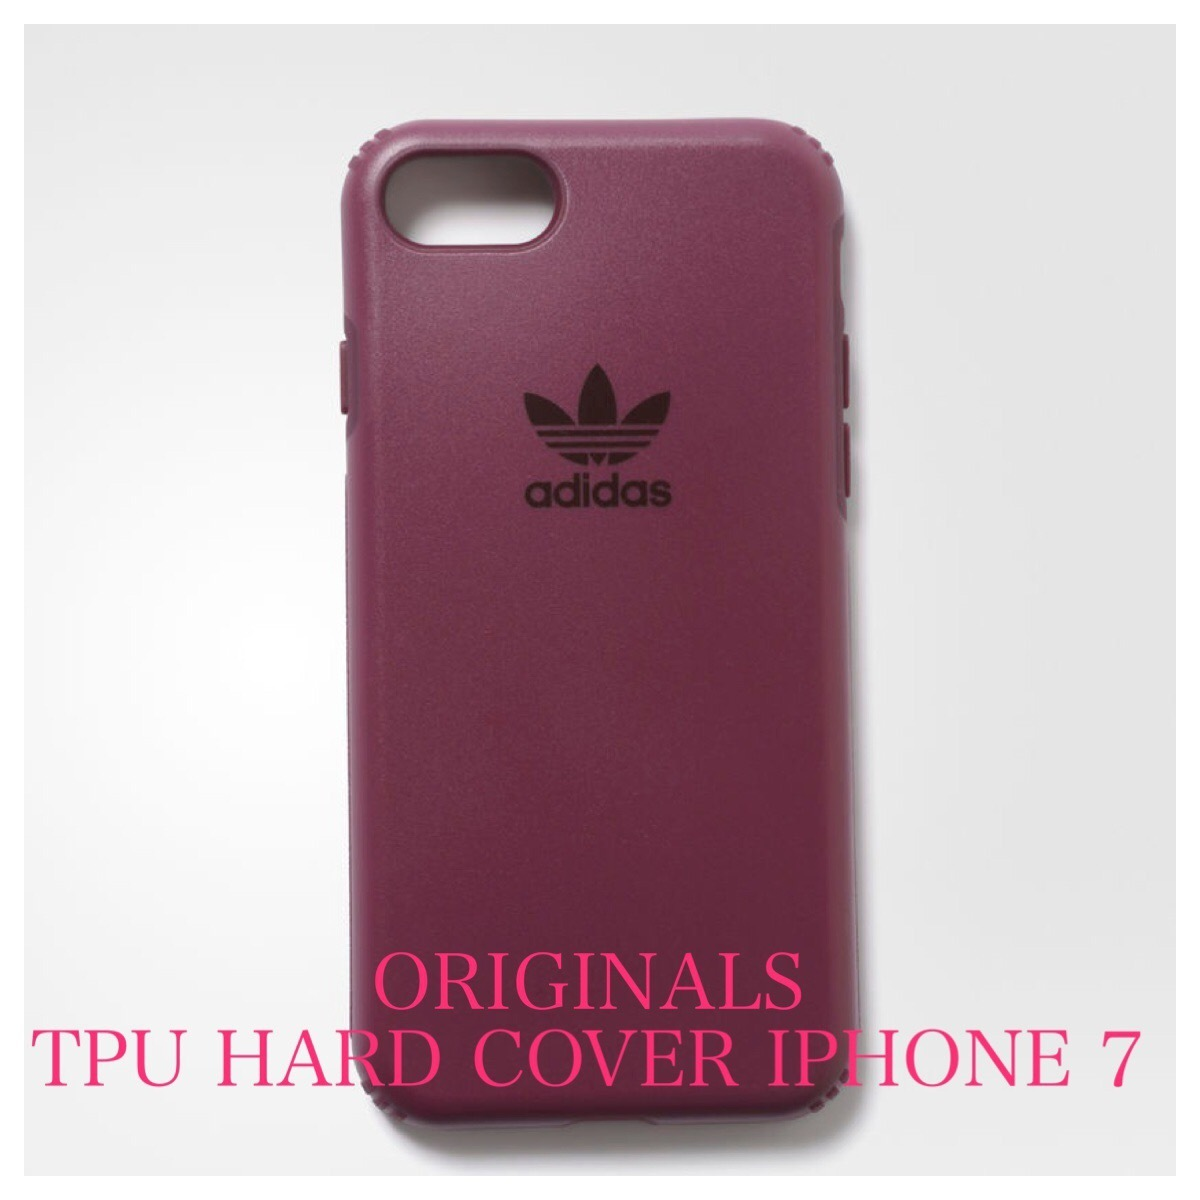 adidas♡ORIGINALS TPU HARD COVER IPHONE 7